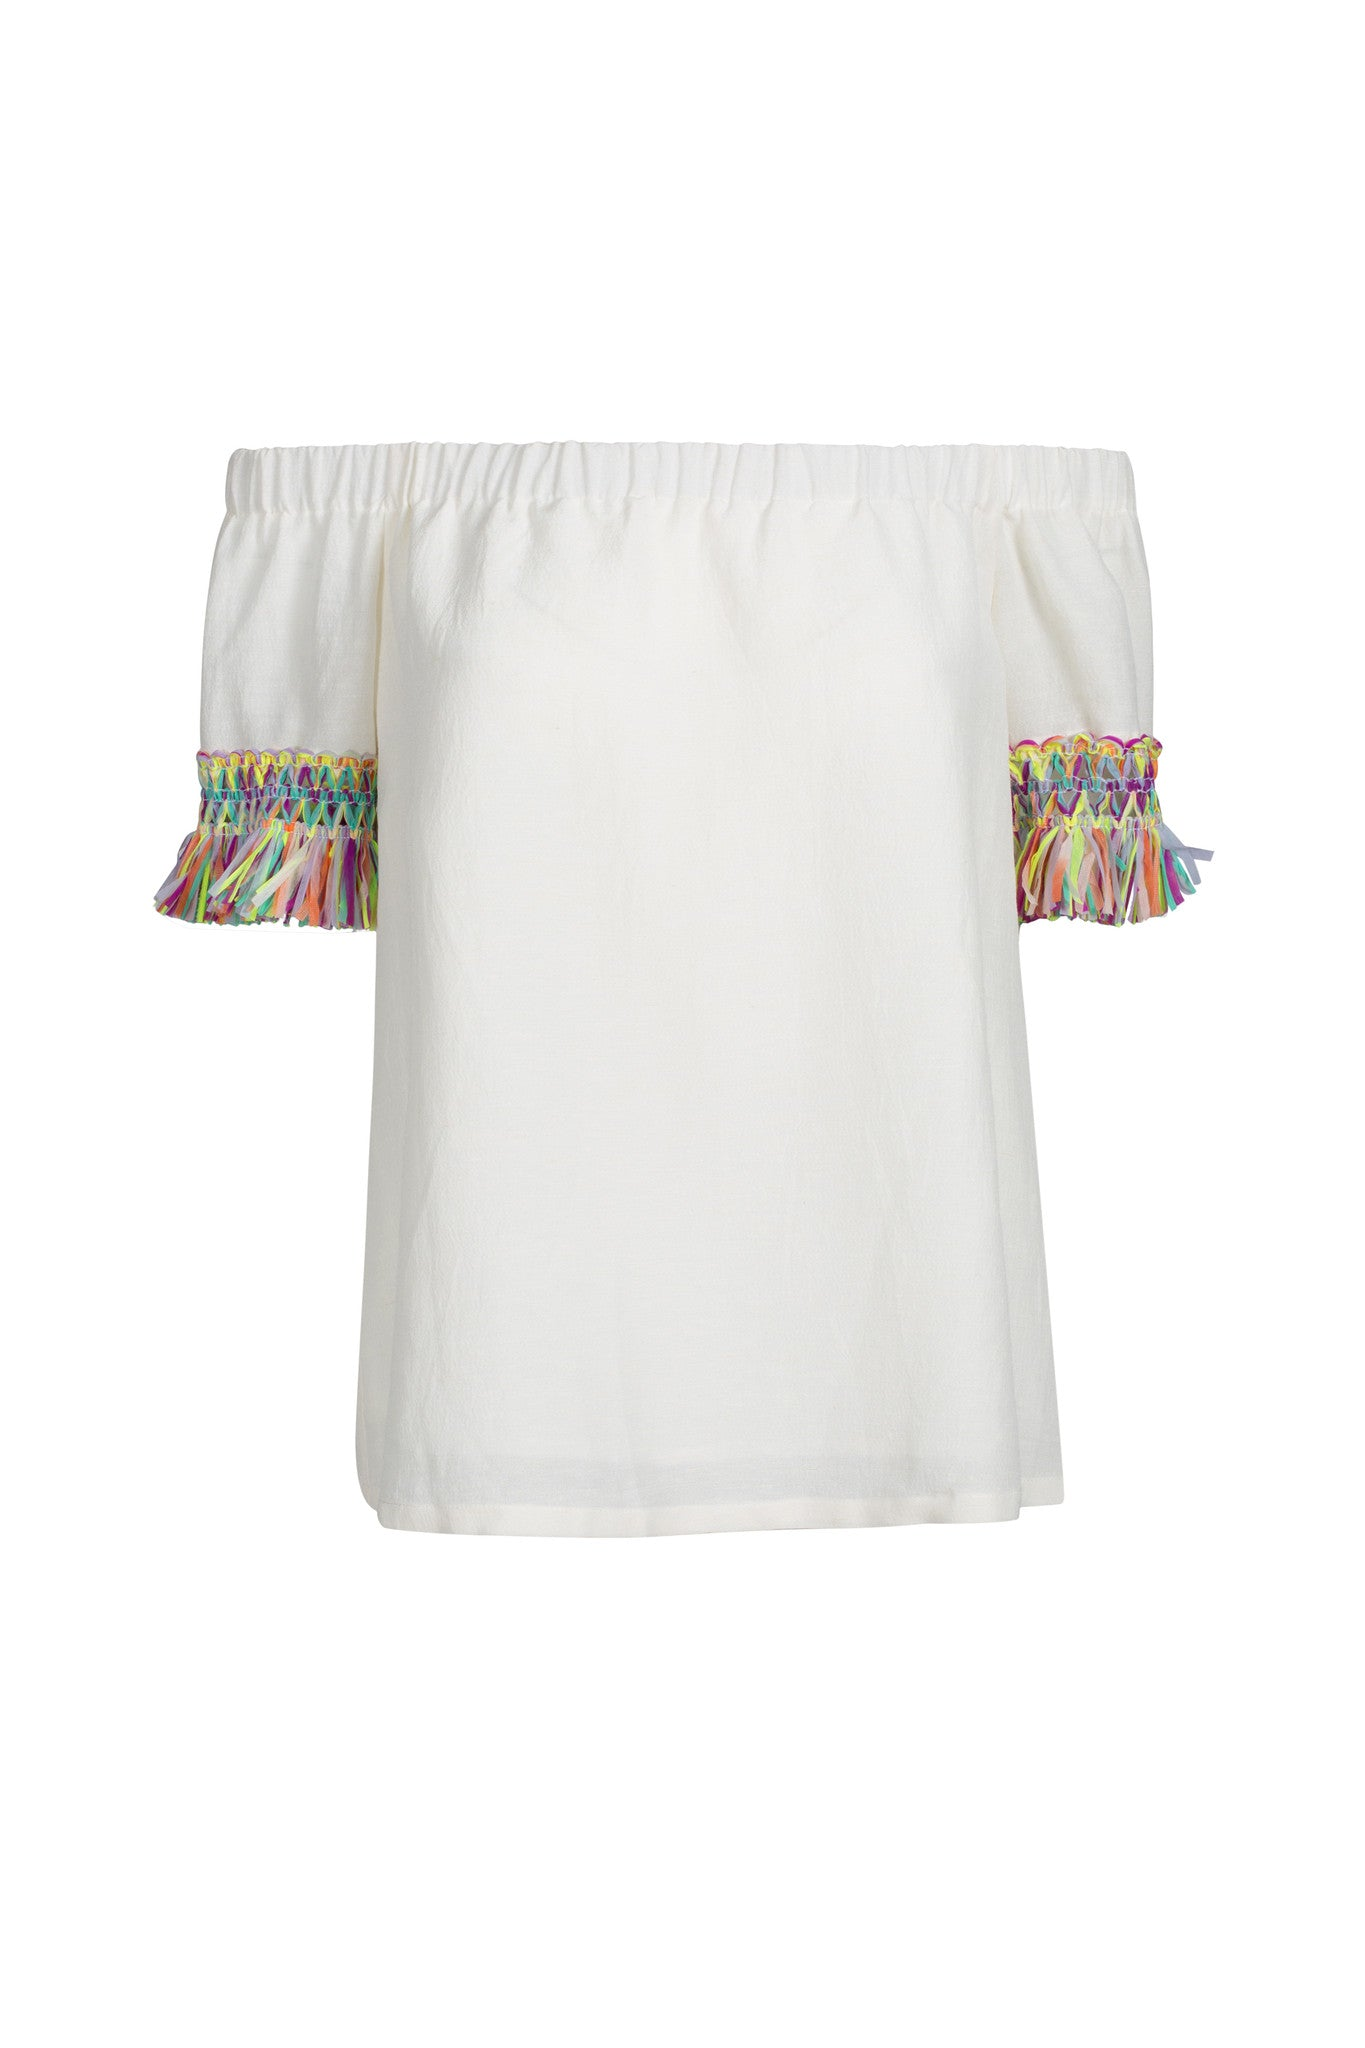 Hada Top - Ivory/Carnival